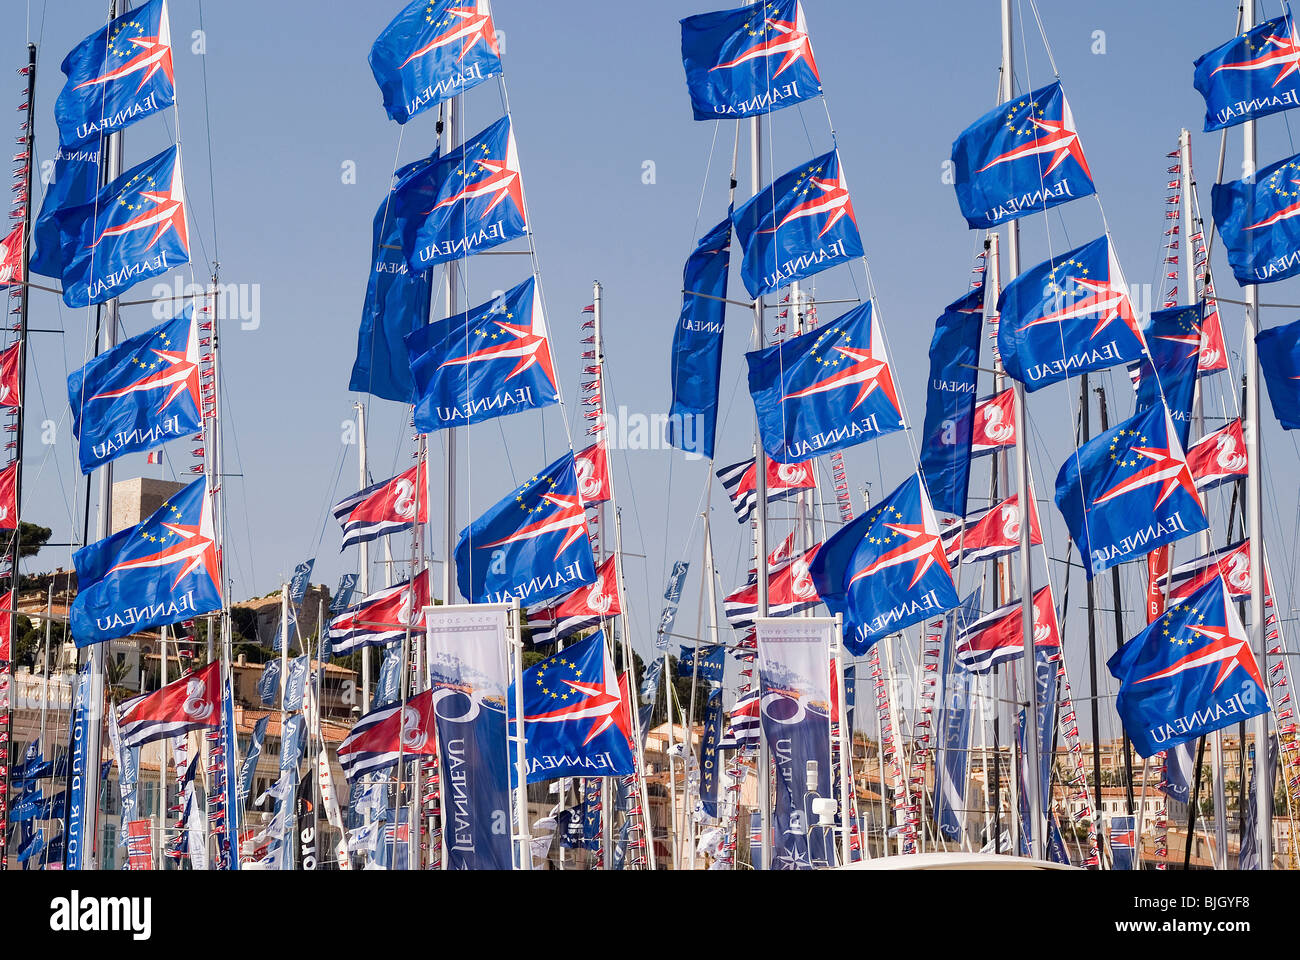 Blue flags fluttering in Vieux Port, Cannes, France - Stock Image